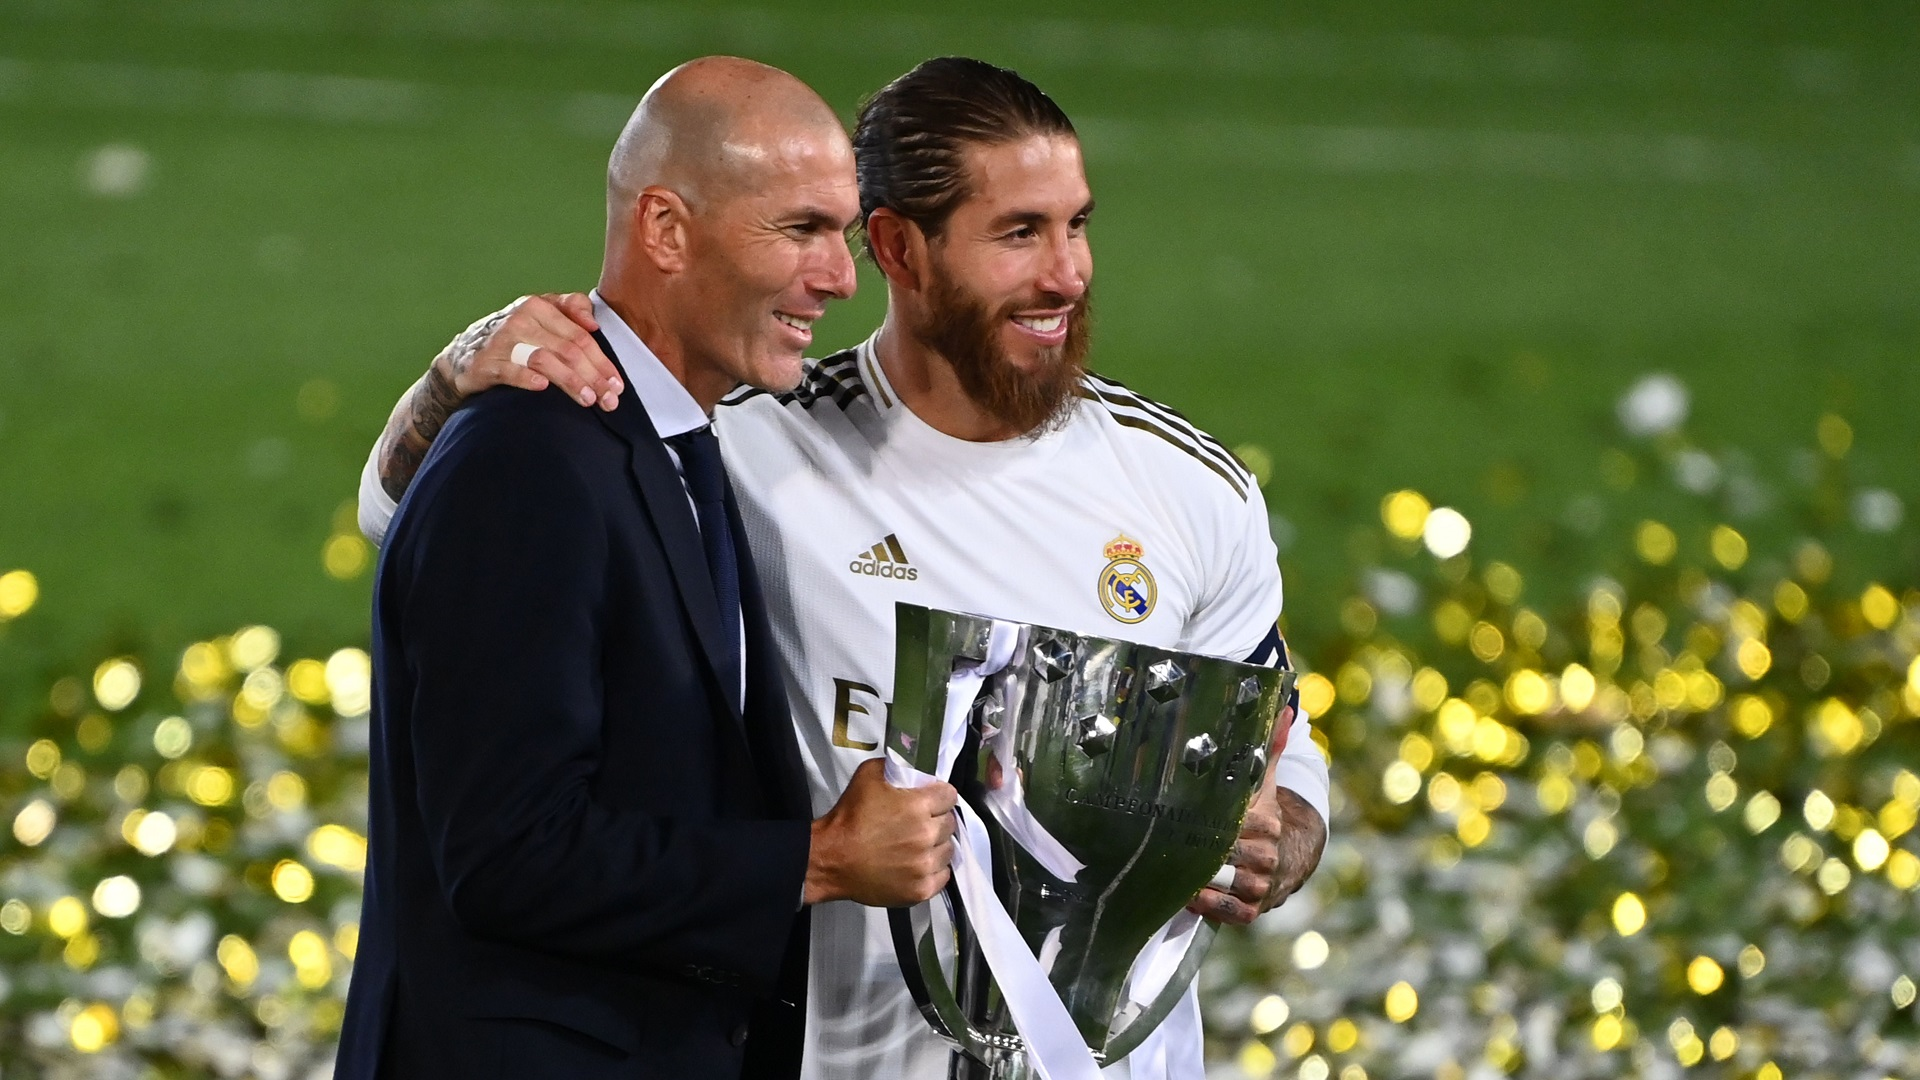 'Everything Zidane touches turns into gold!' - Ramos praises 'unique' Real Madrid boss after La Liga triumph